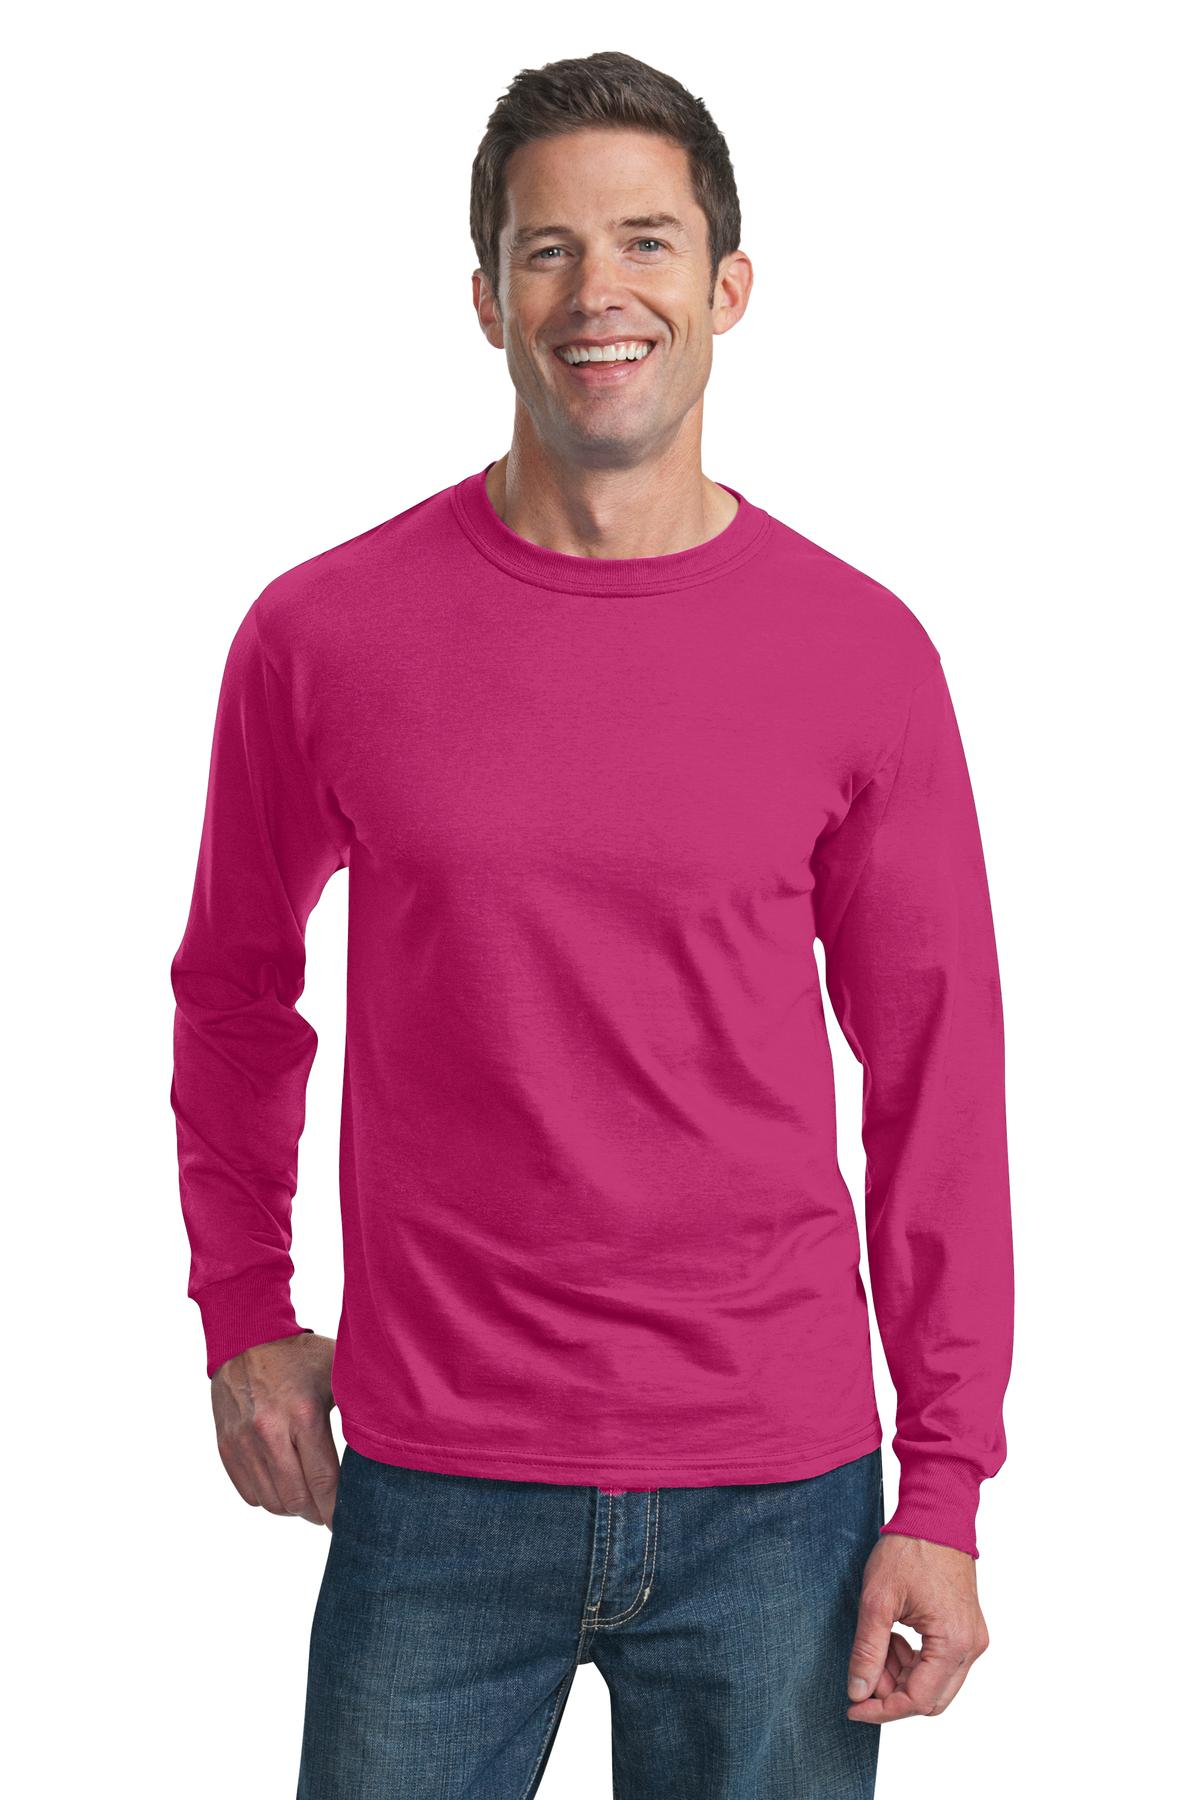 Fruit of the Loom ®  HD Cotton ™  100% Cotton Long Sleeve T-Shirt. 4930 - Cyber Pink